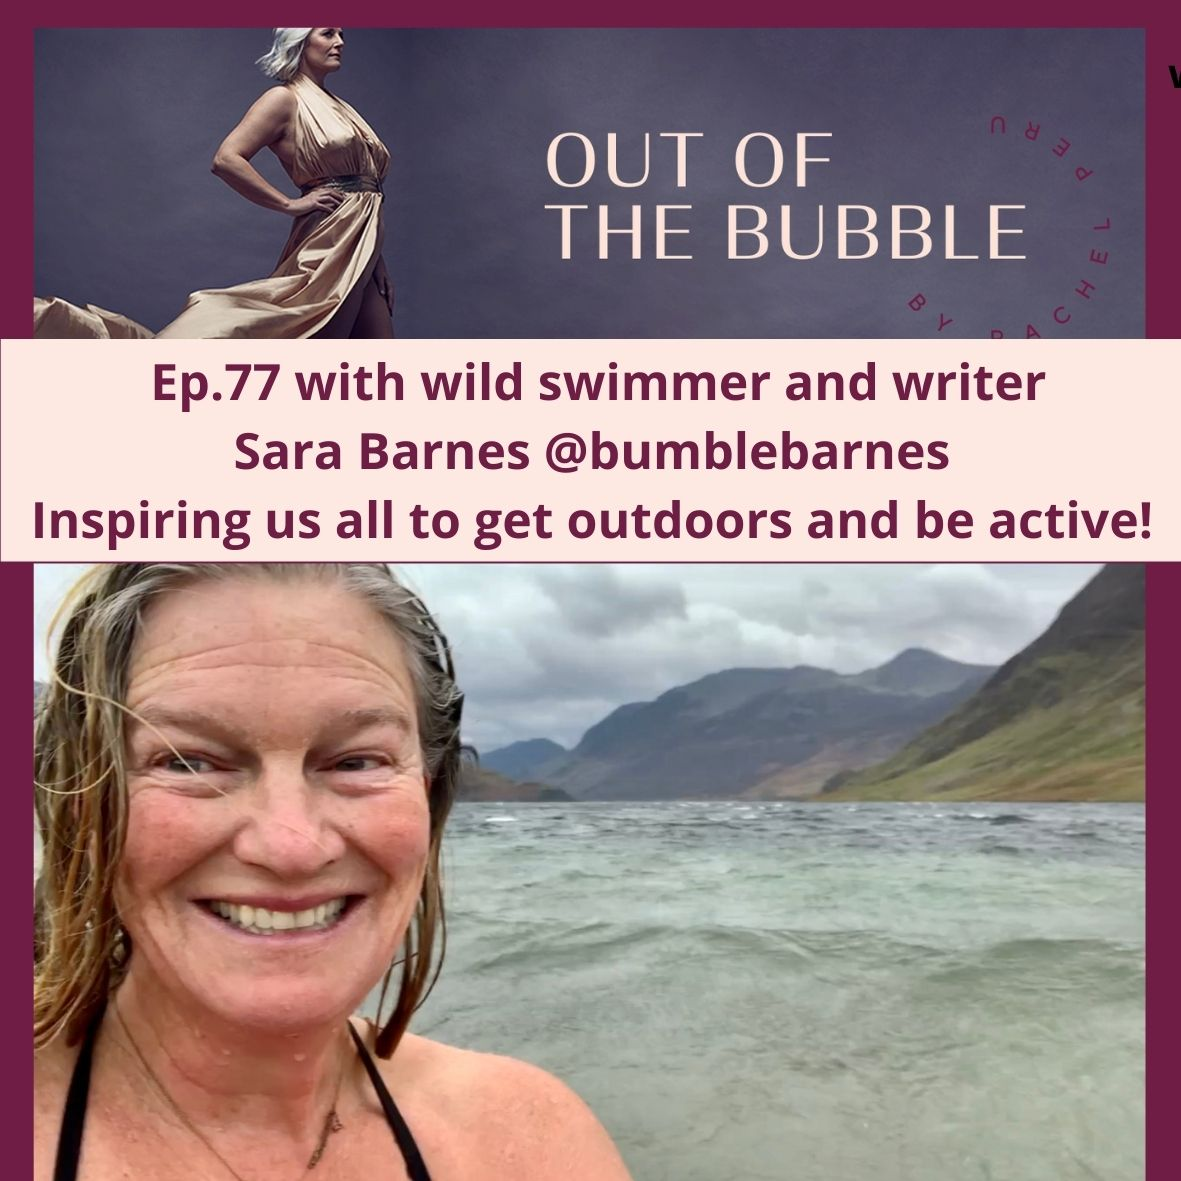 Ep.77 Out of the Bubble with inspiring wild swimmer and writer Sara Barnes